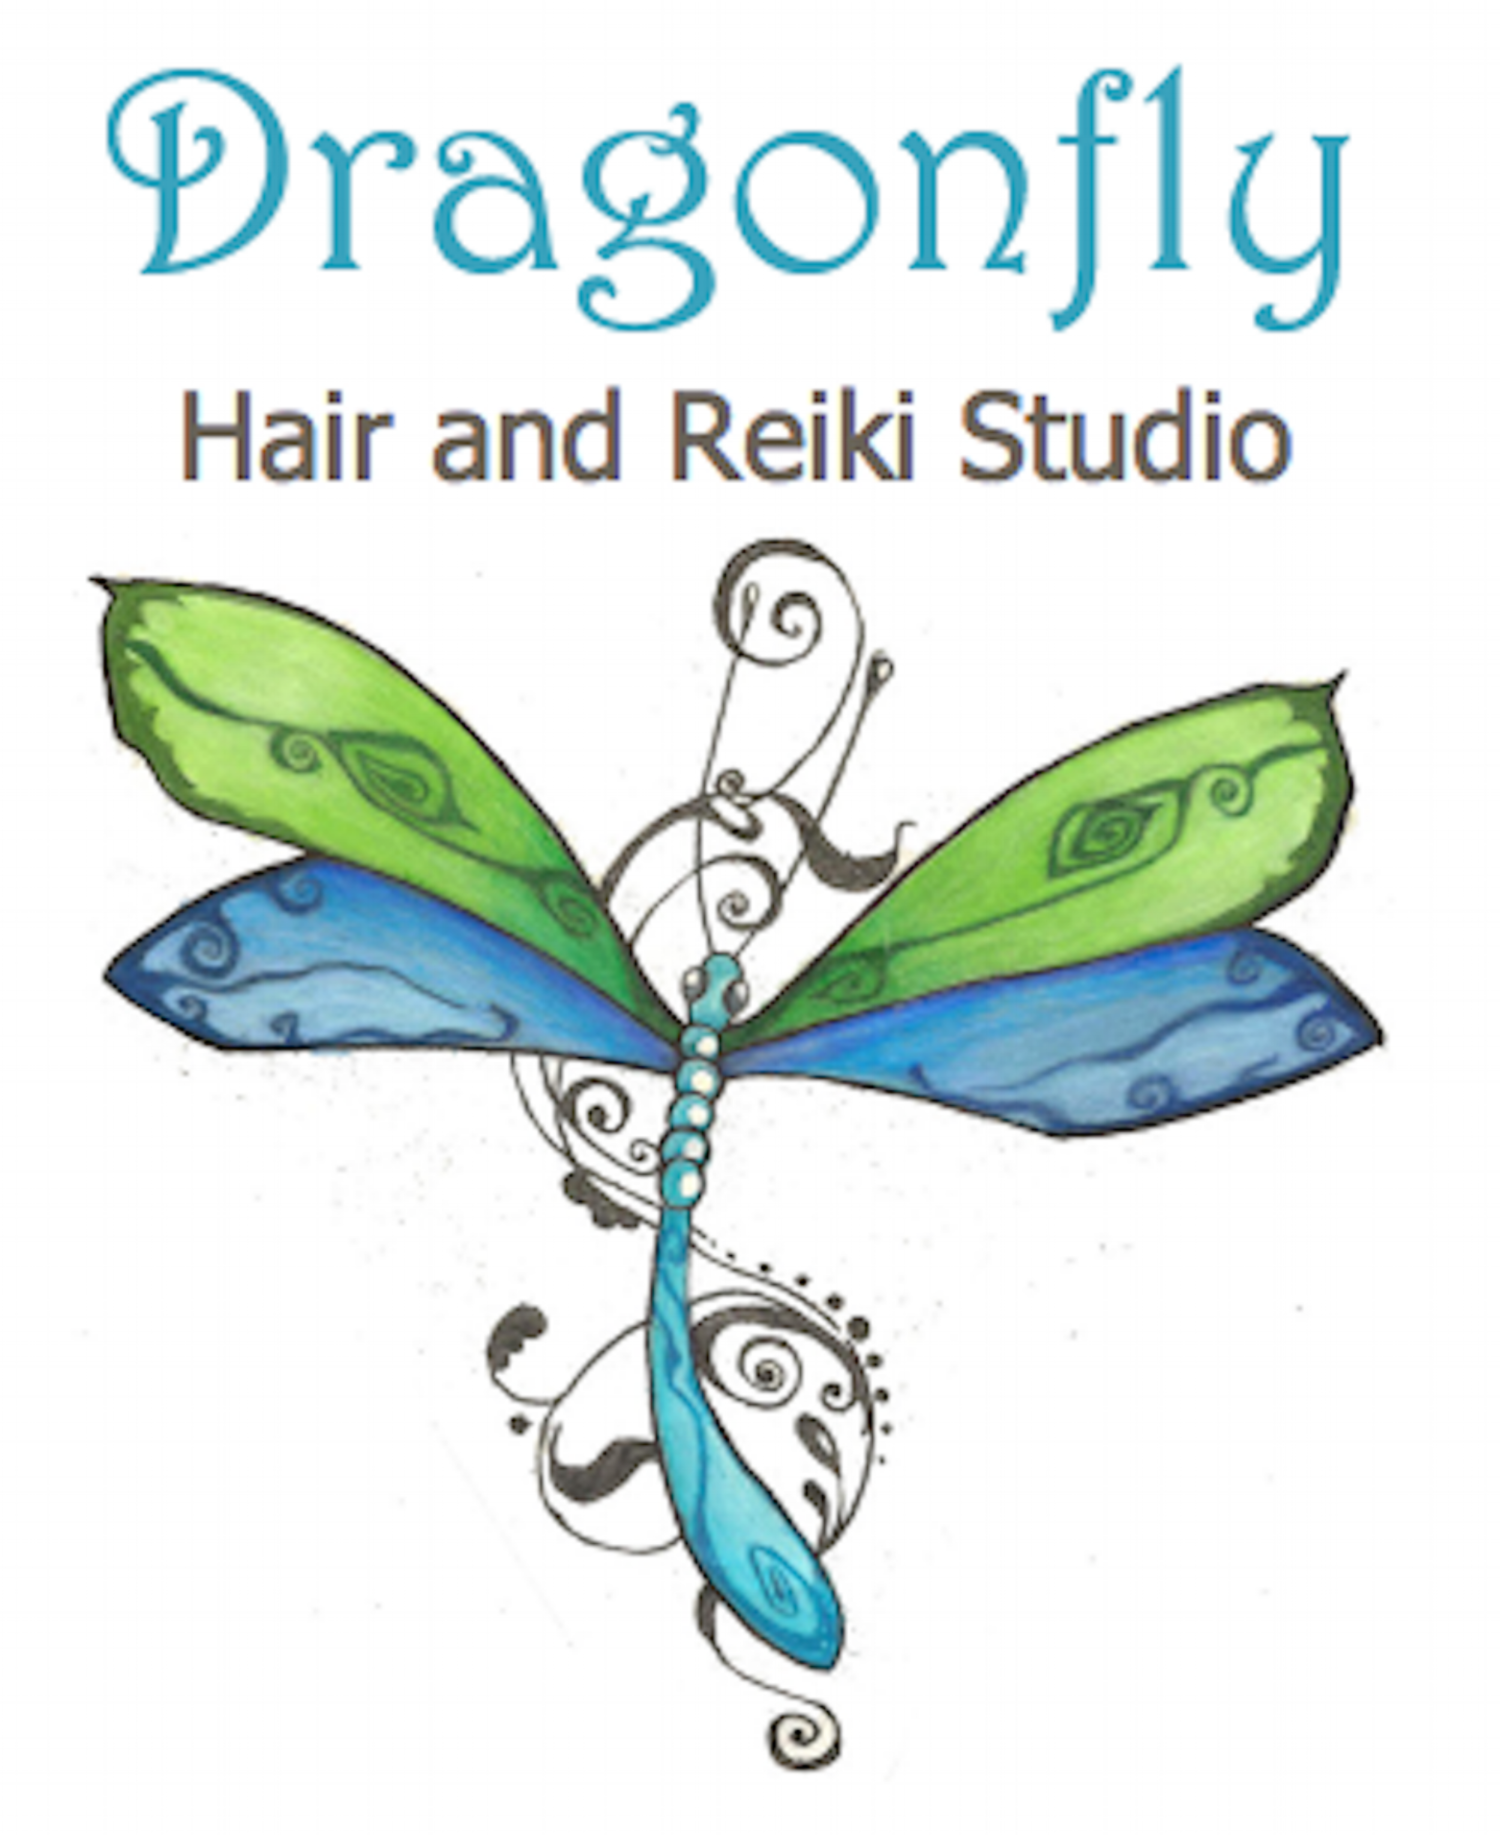 Dragonfly Hair and Reiki Studio